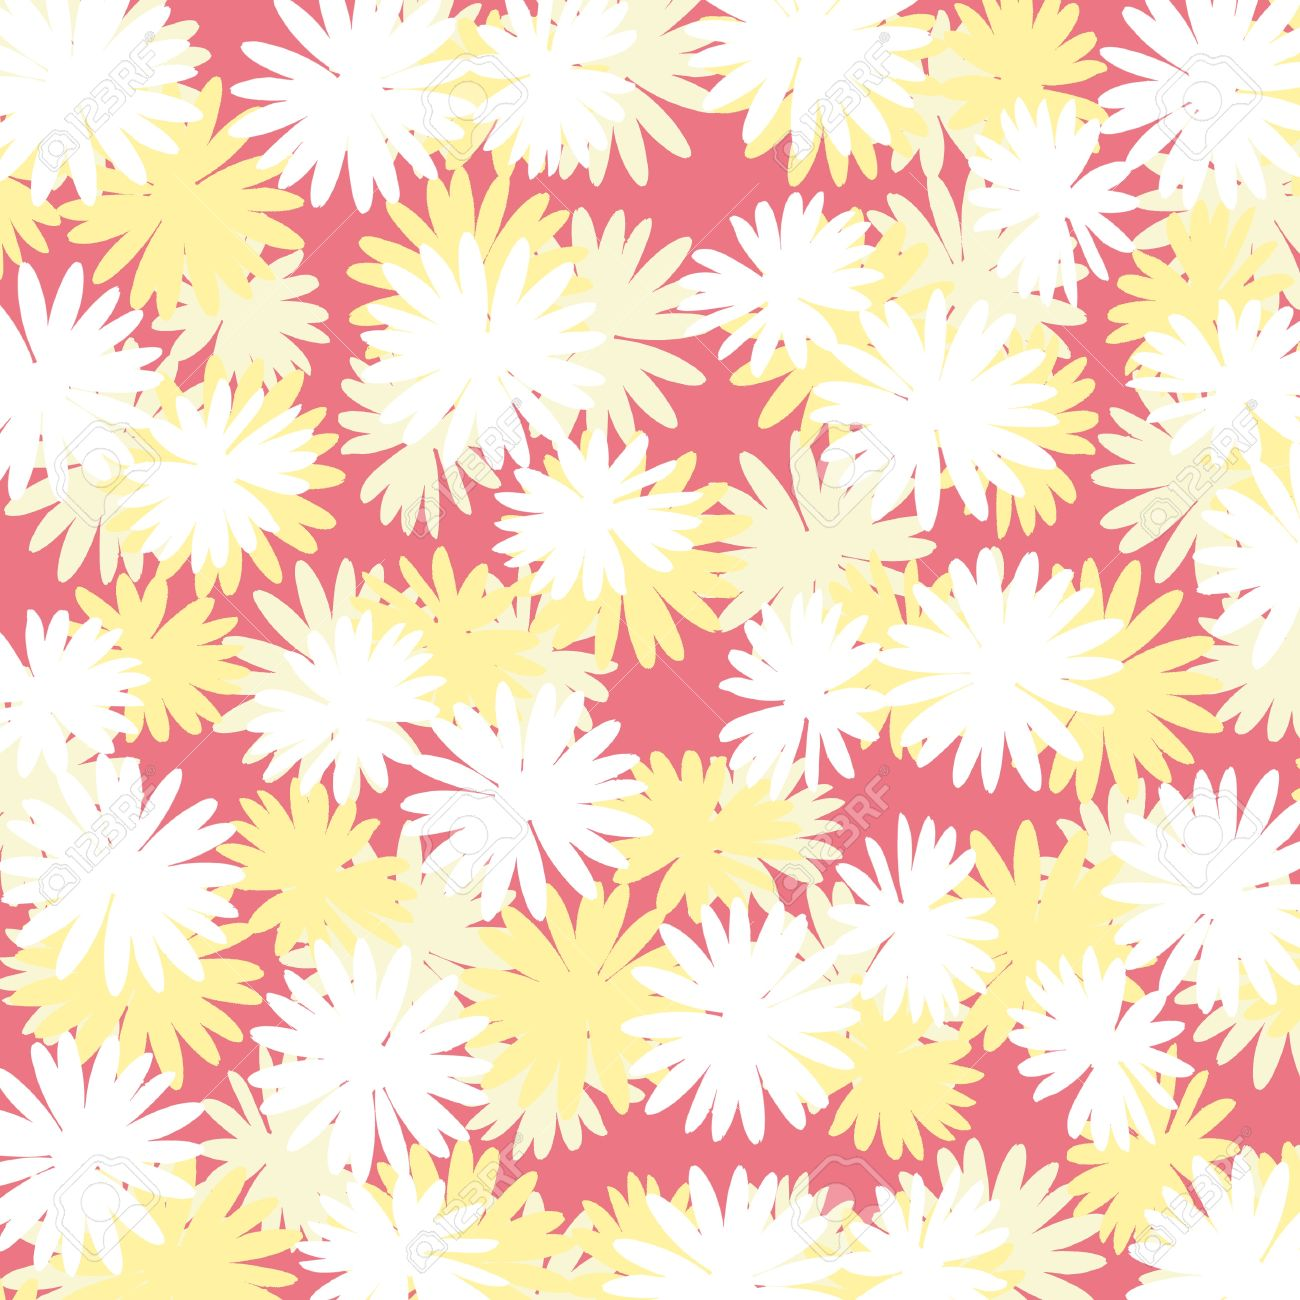 Flowered Background Stock Photo, Picture And Royalty Free Image.